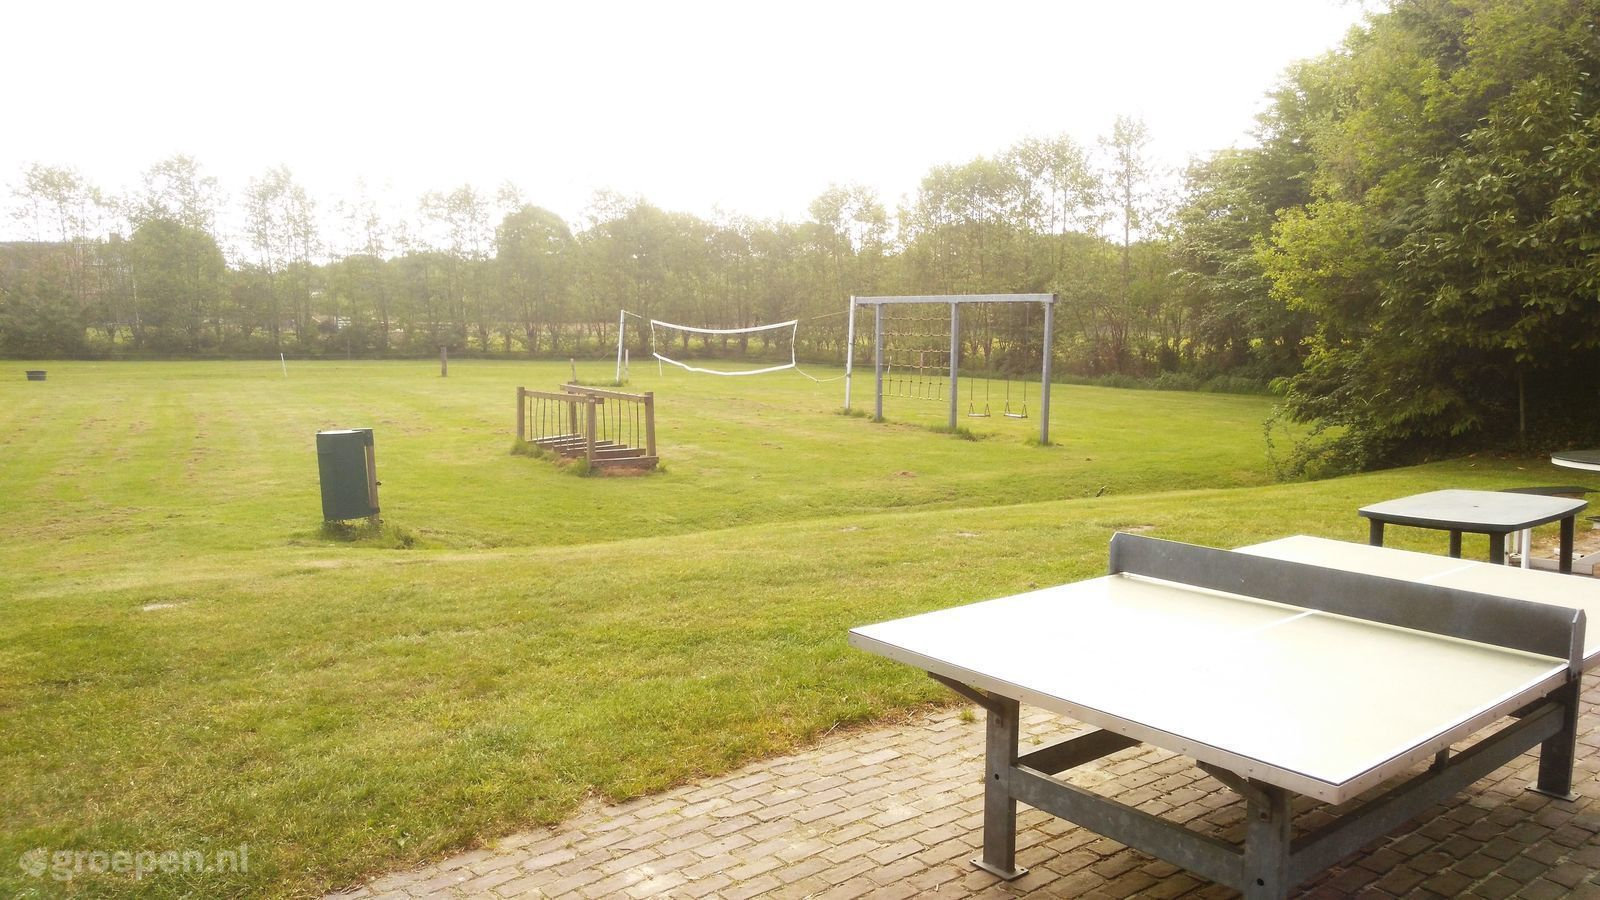 Holiday Farmhouse Ijhorst